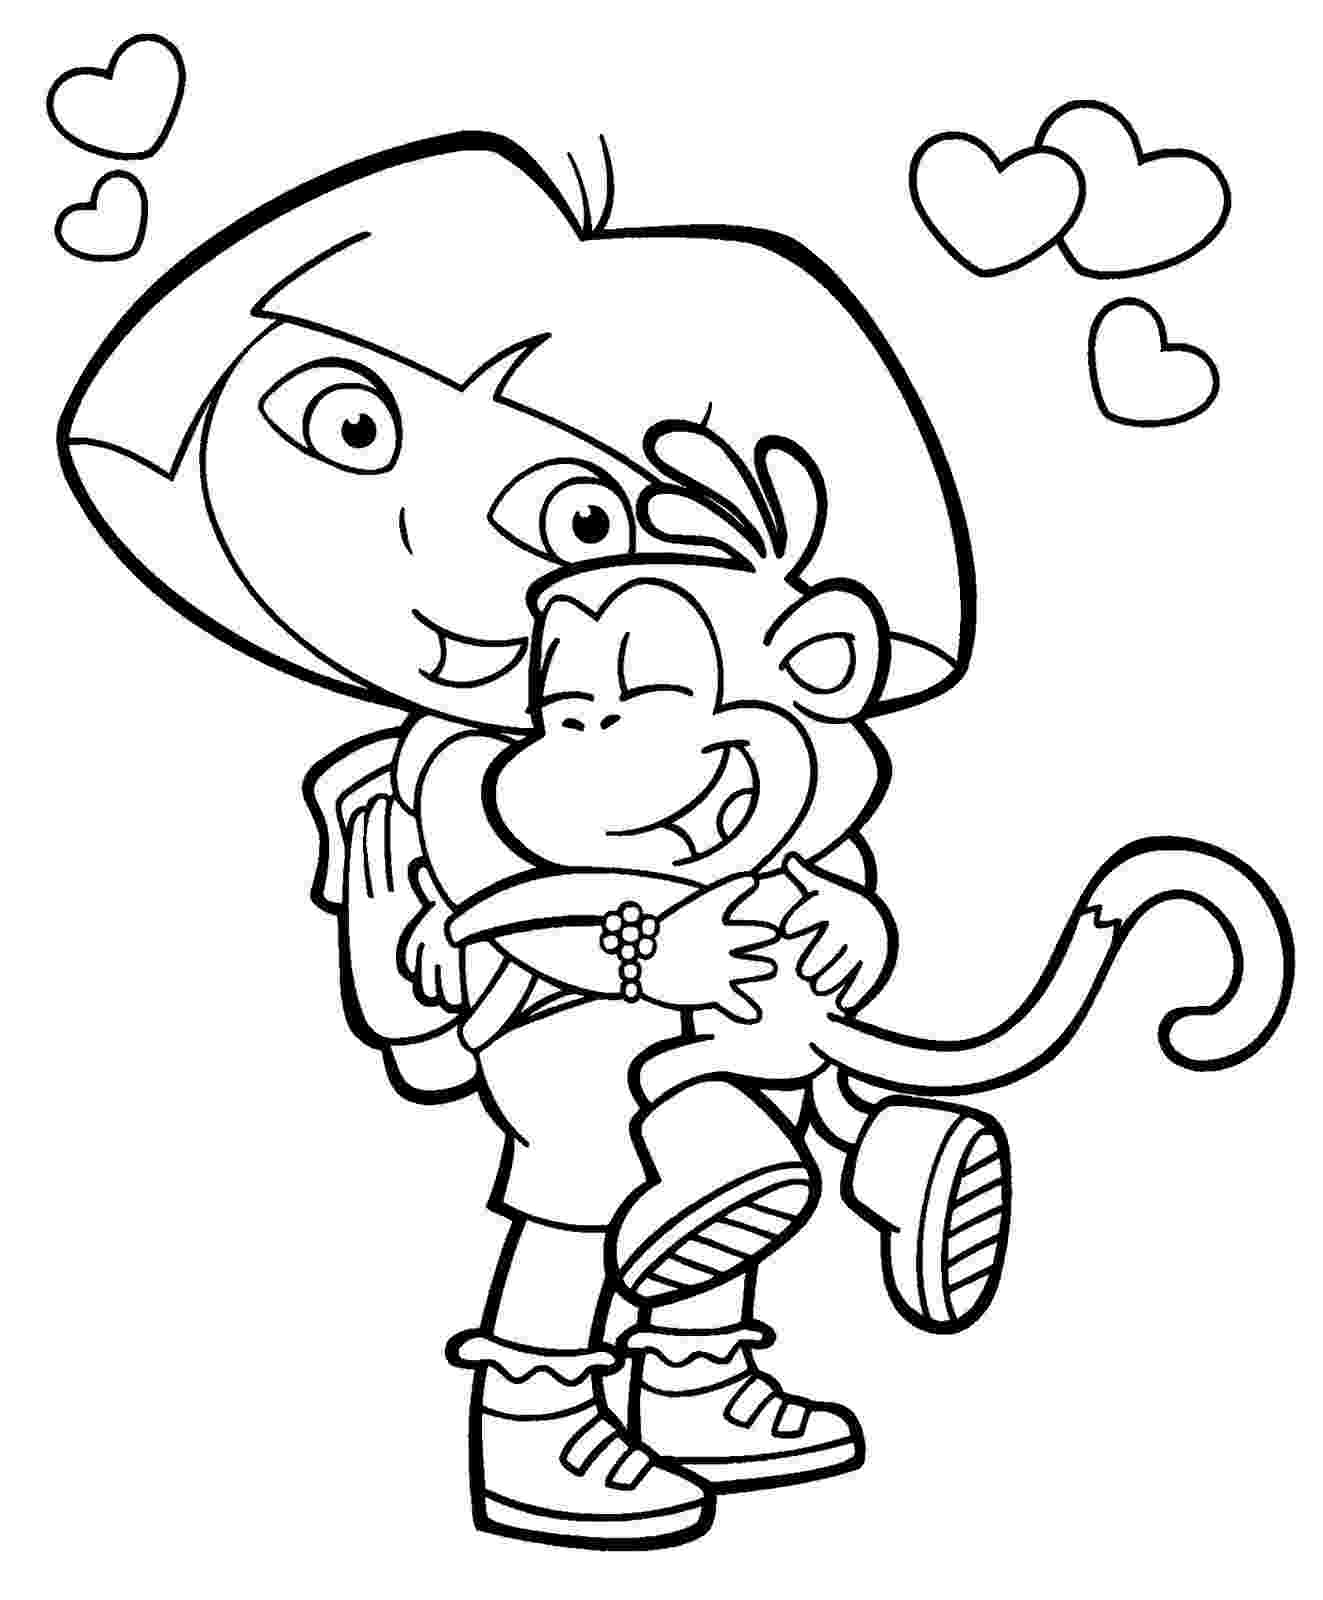 colouring pages dora free printable dora the explorer coloring pages for kids colouring dora pages